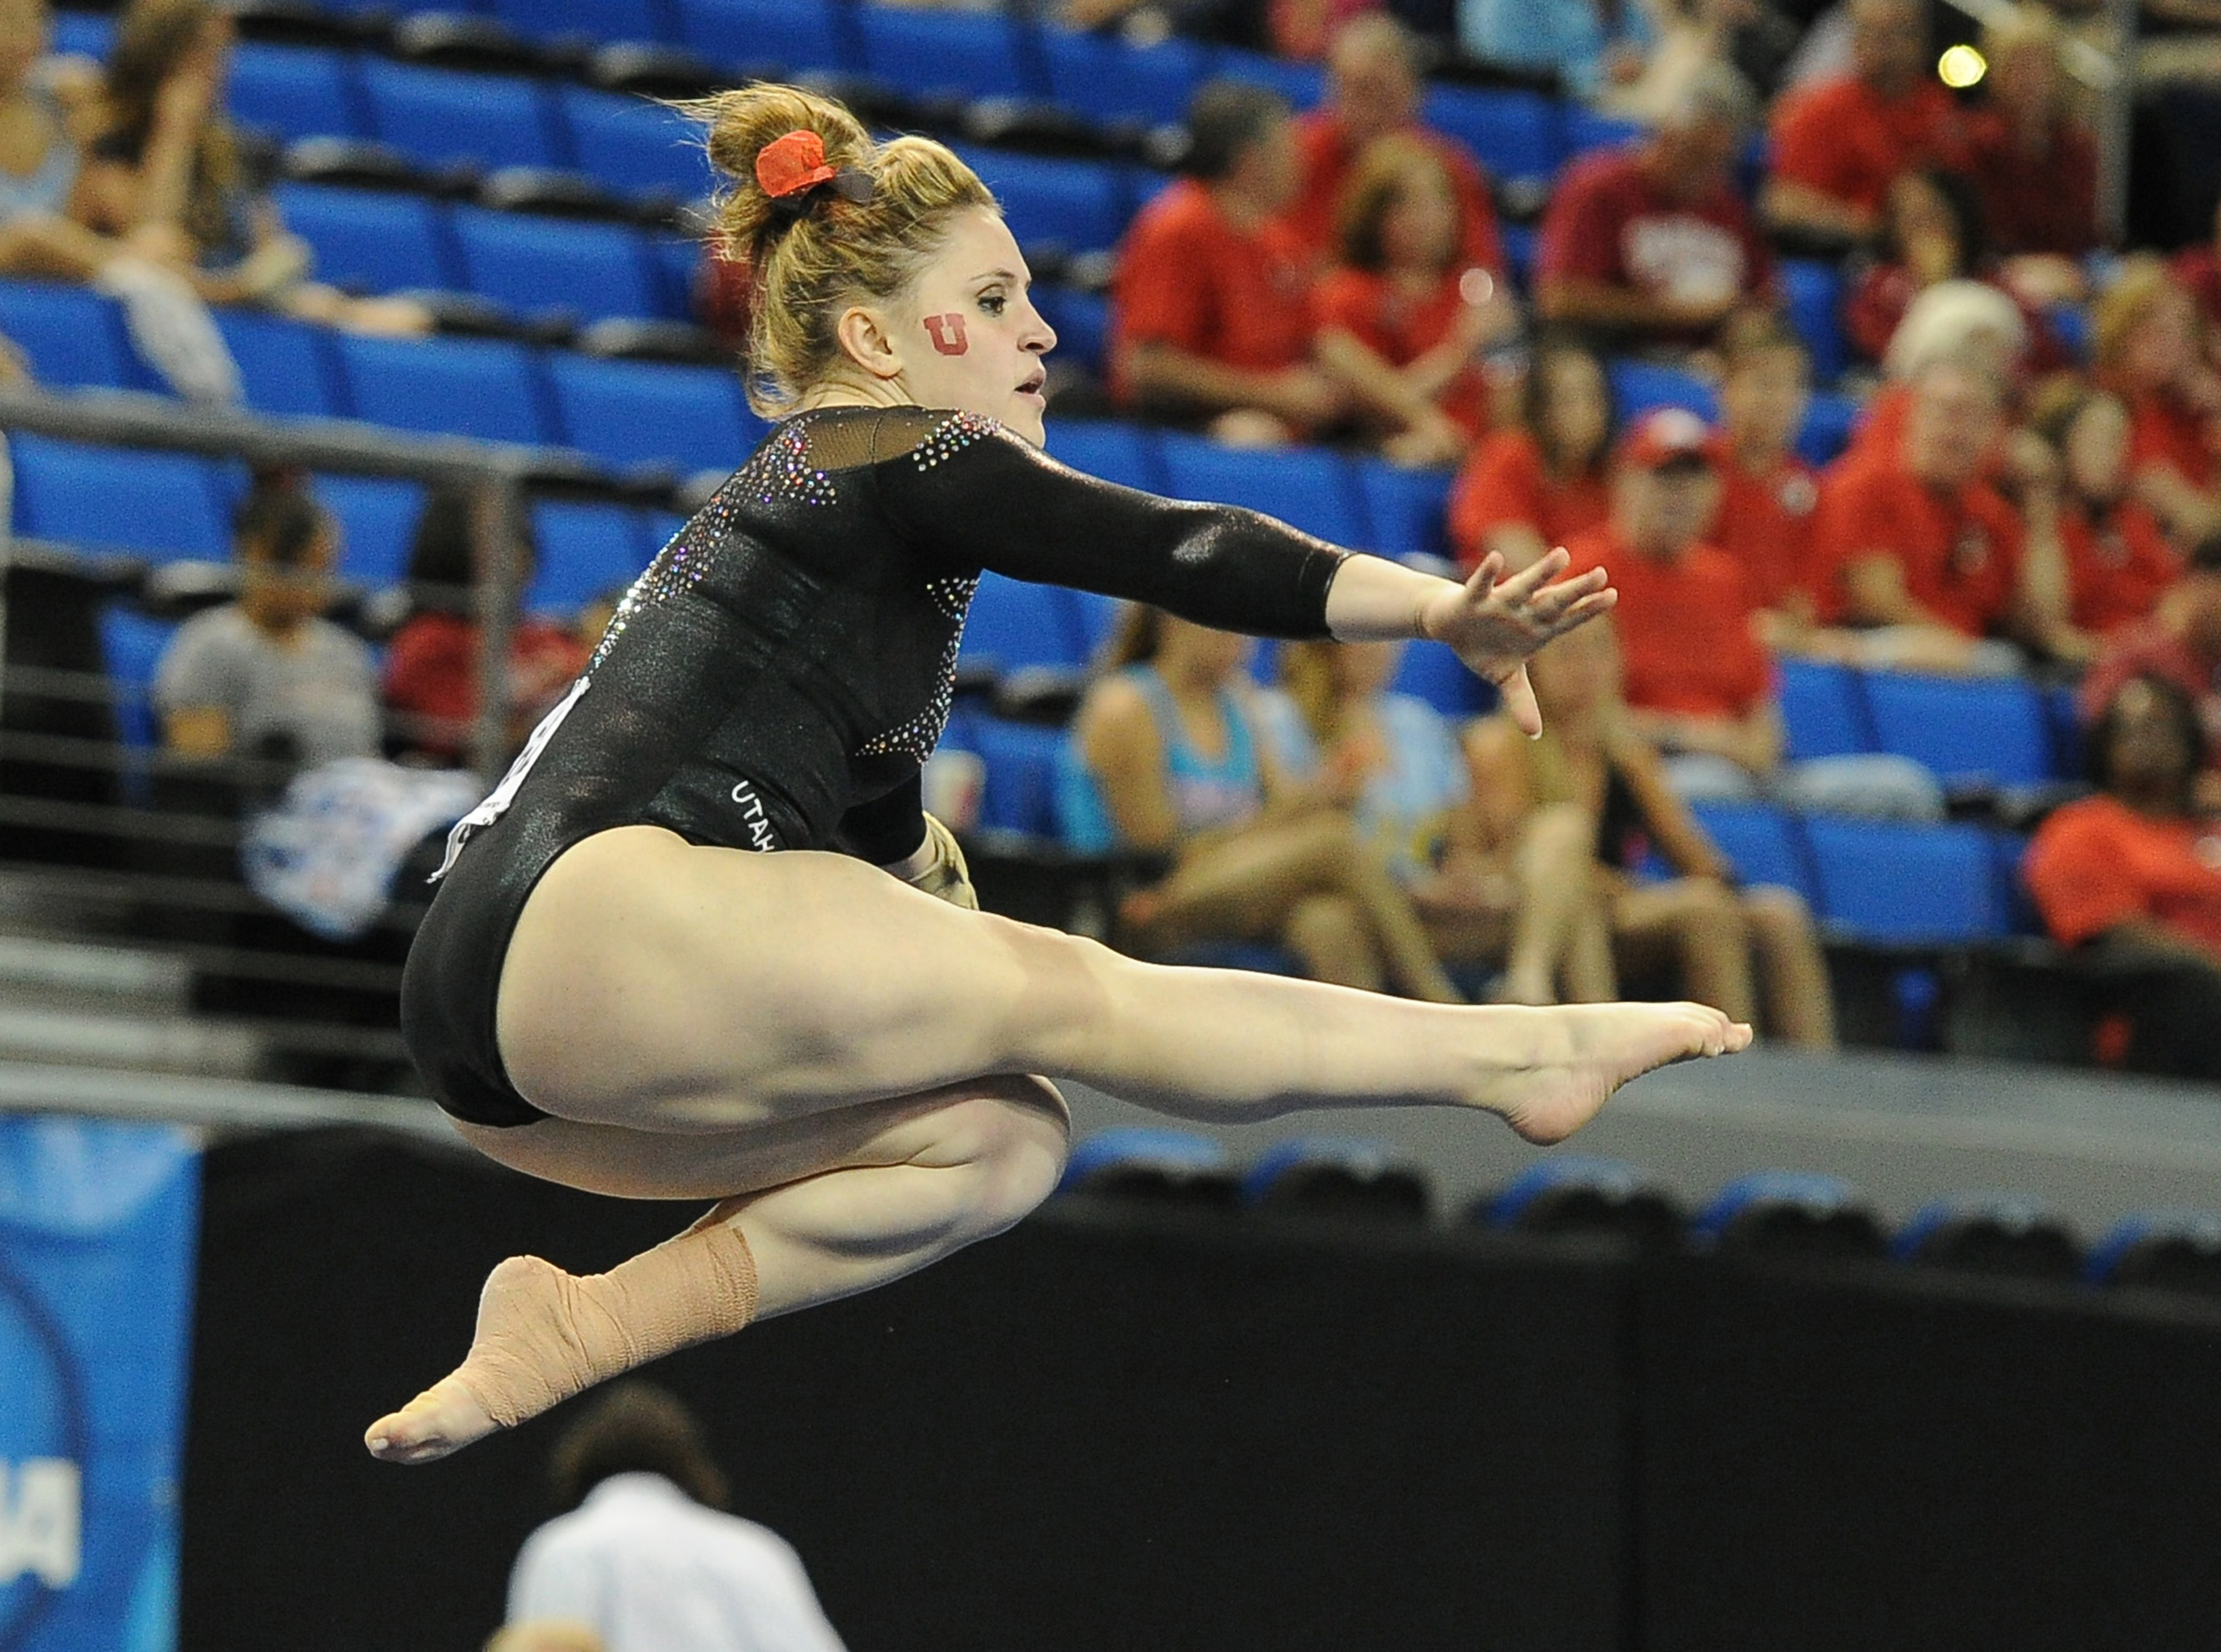 Utah gymnast Beck Tutka and her Red Rocks teammates have their work cut out for them in the 2015 season, defending their Pac-12 title and making a run at a national championship.